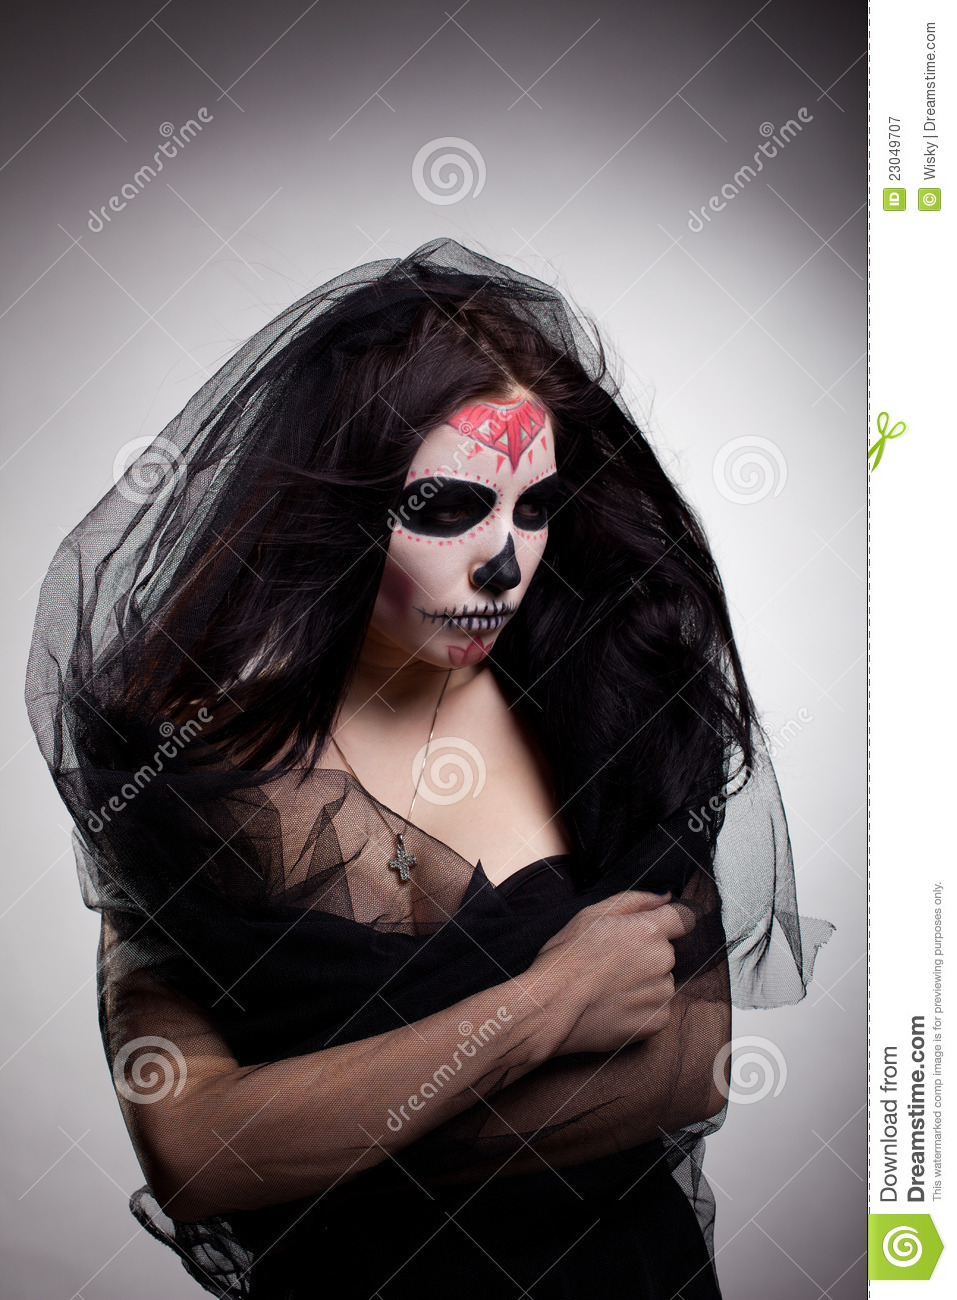 Young Woman Day Dead Mask Skull Face Art